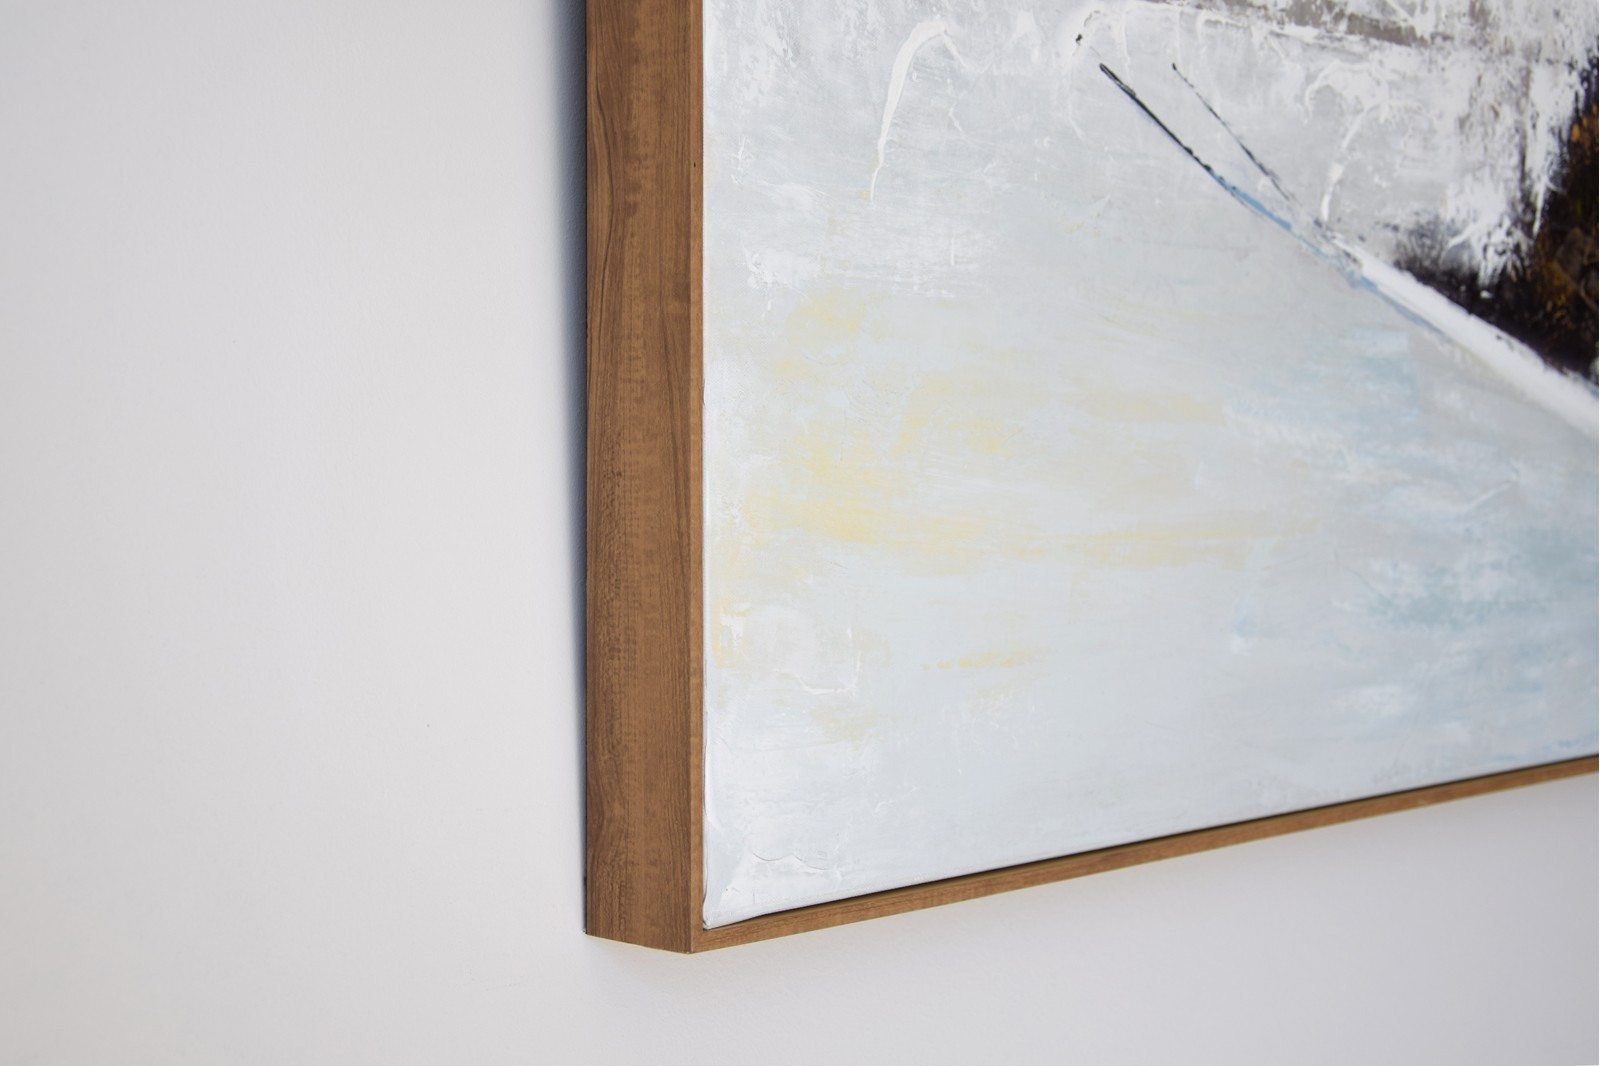 ABSTRACT PAINTING SHADOWS WITH FRAME